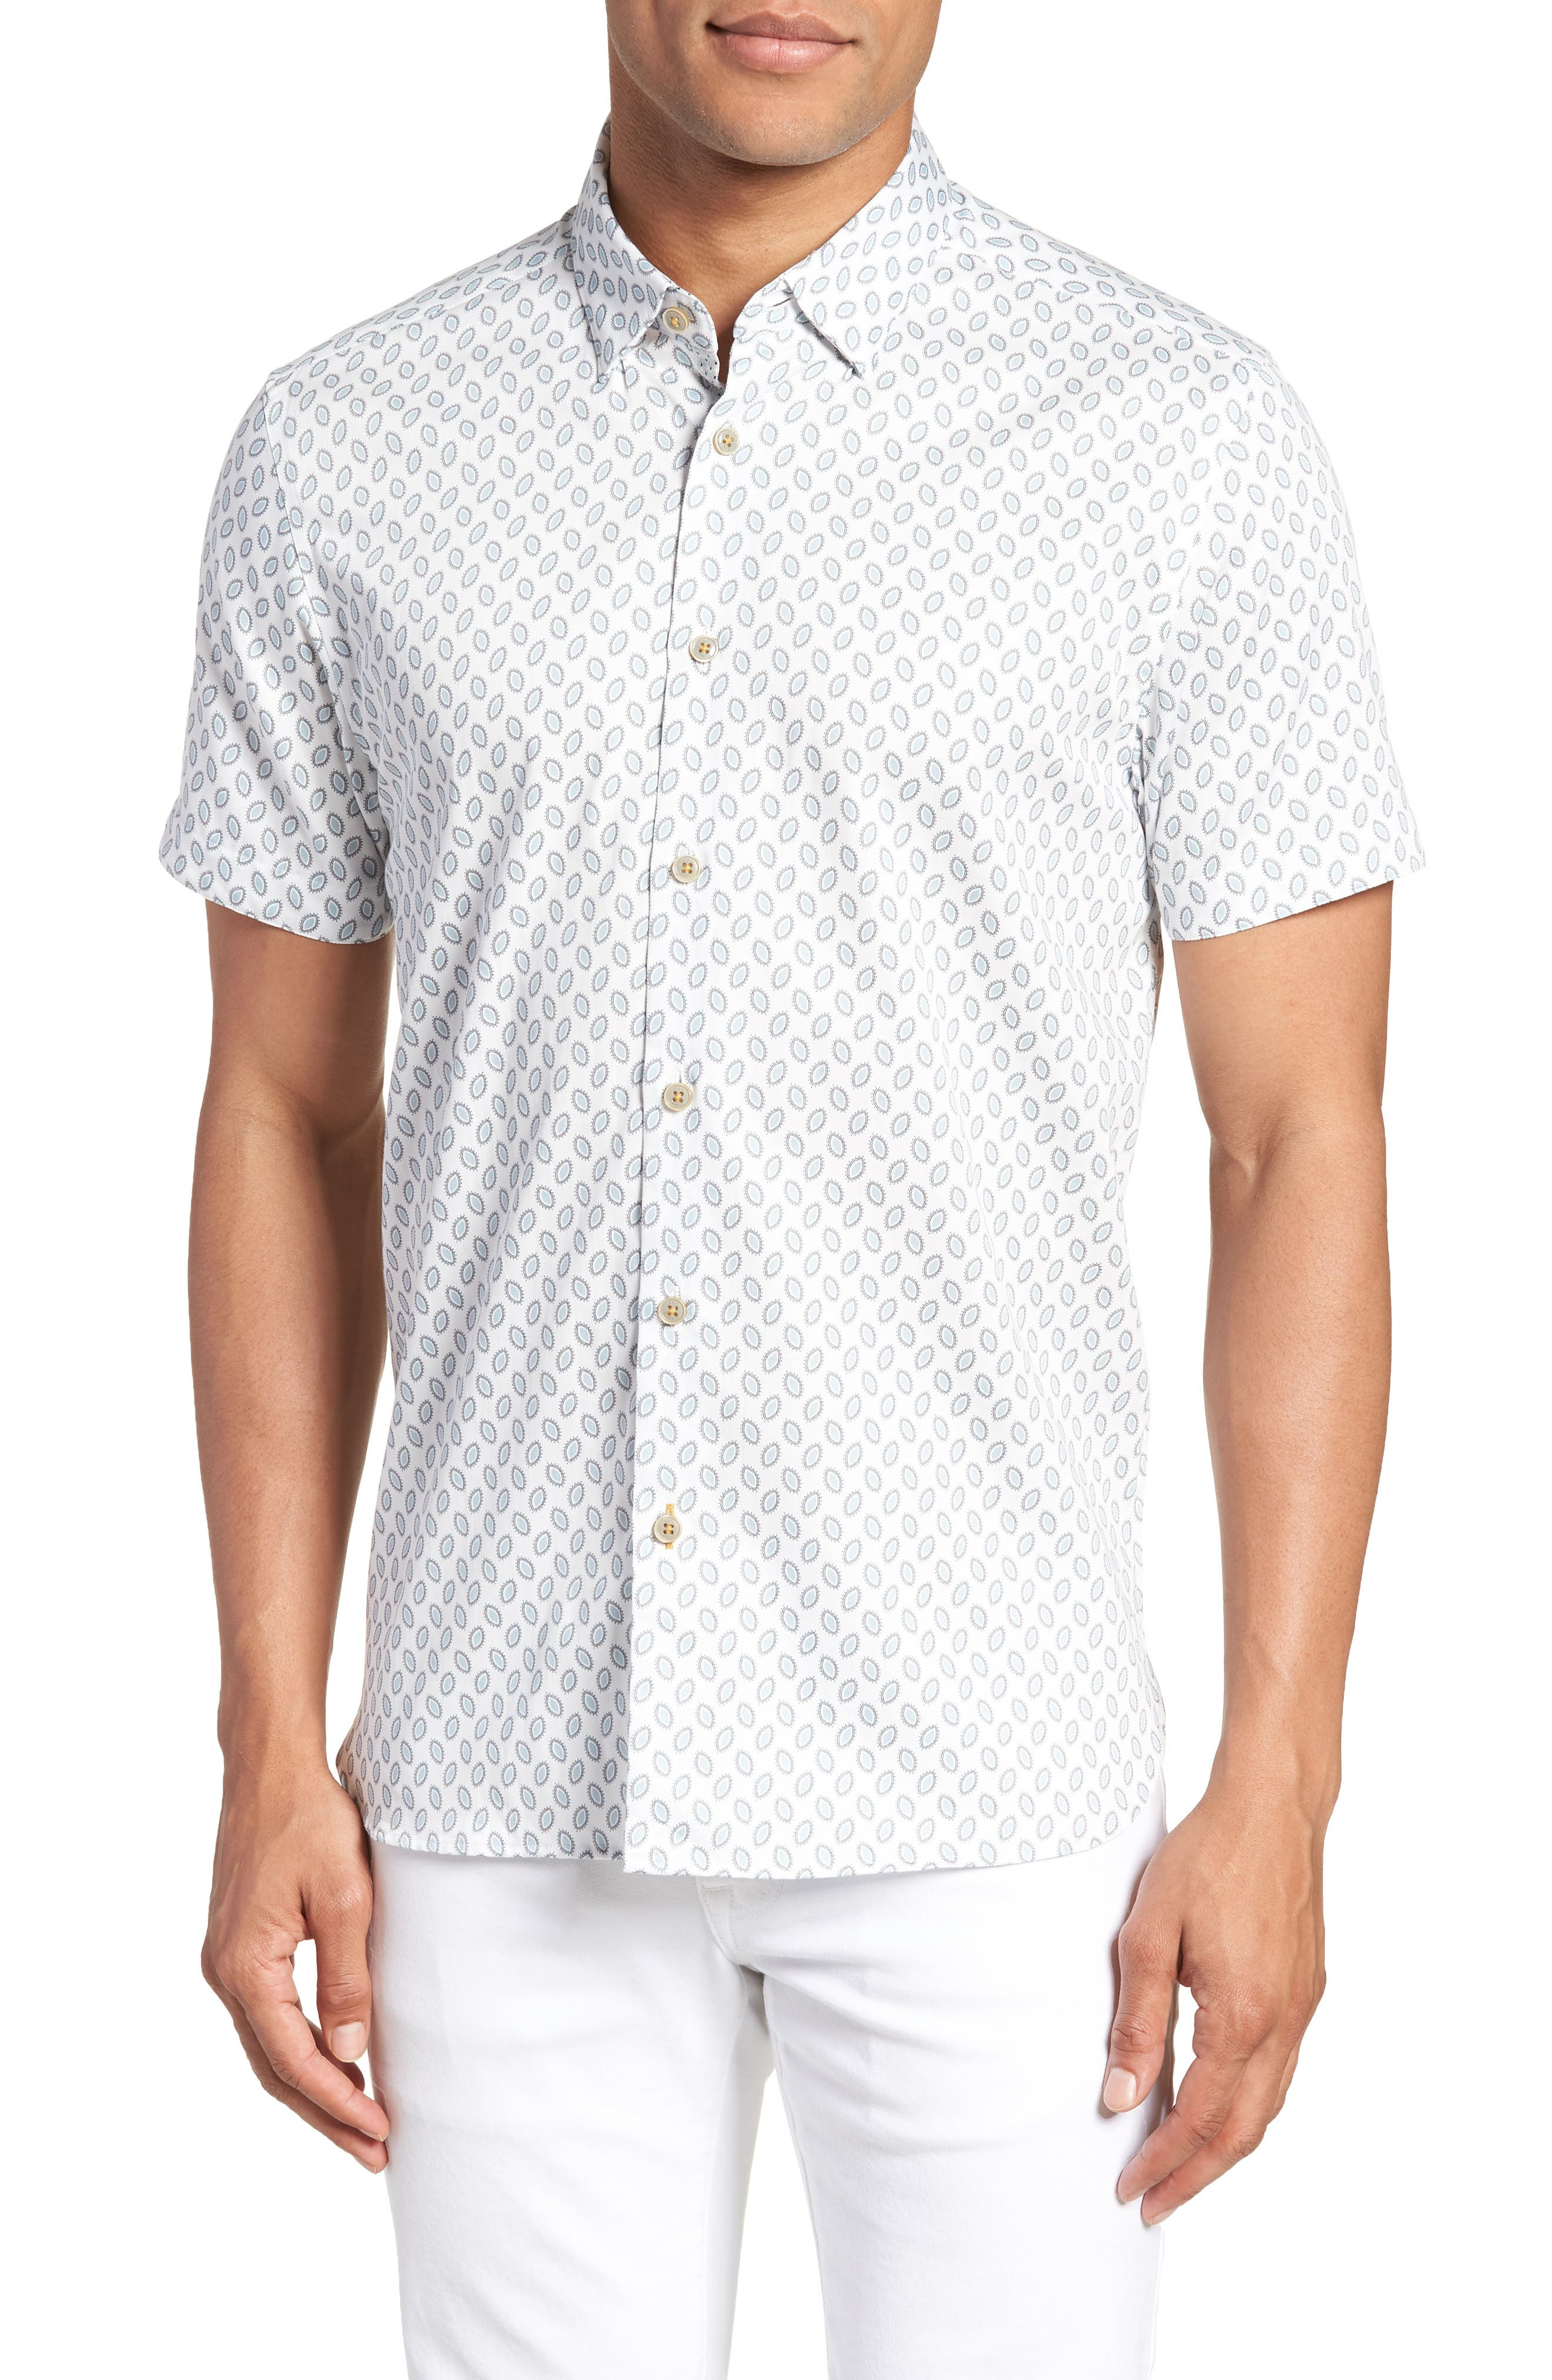 Newfone Trim Fit Chambray Sport Shirt,                         Main,                         color, 100